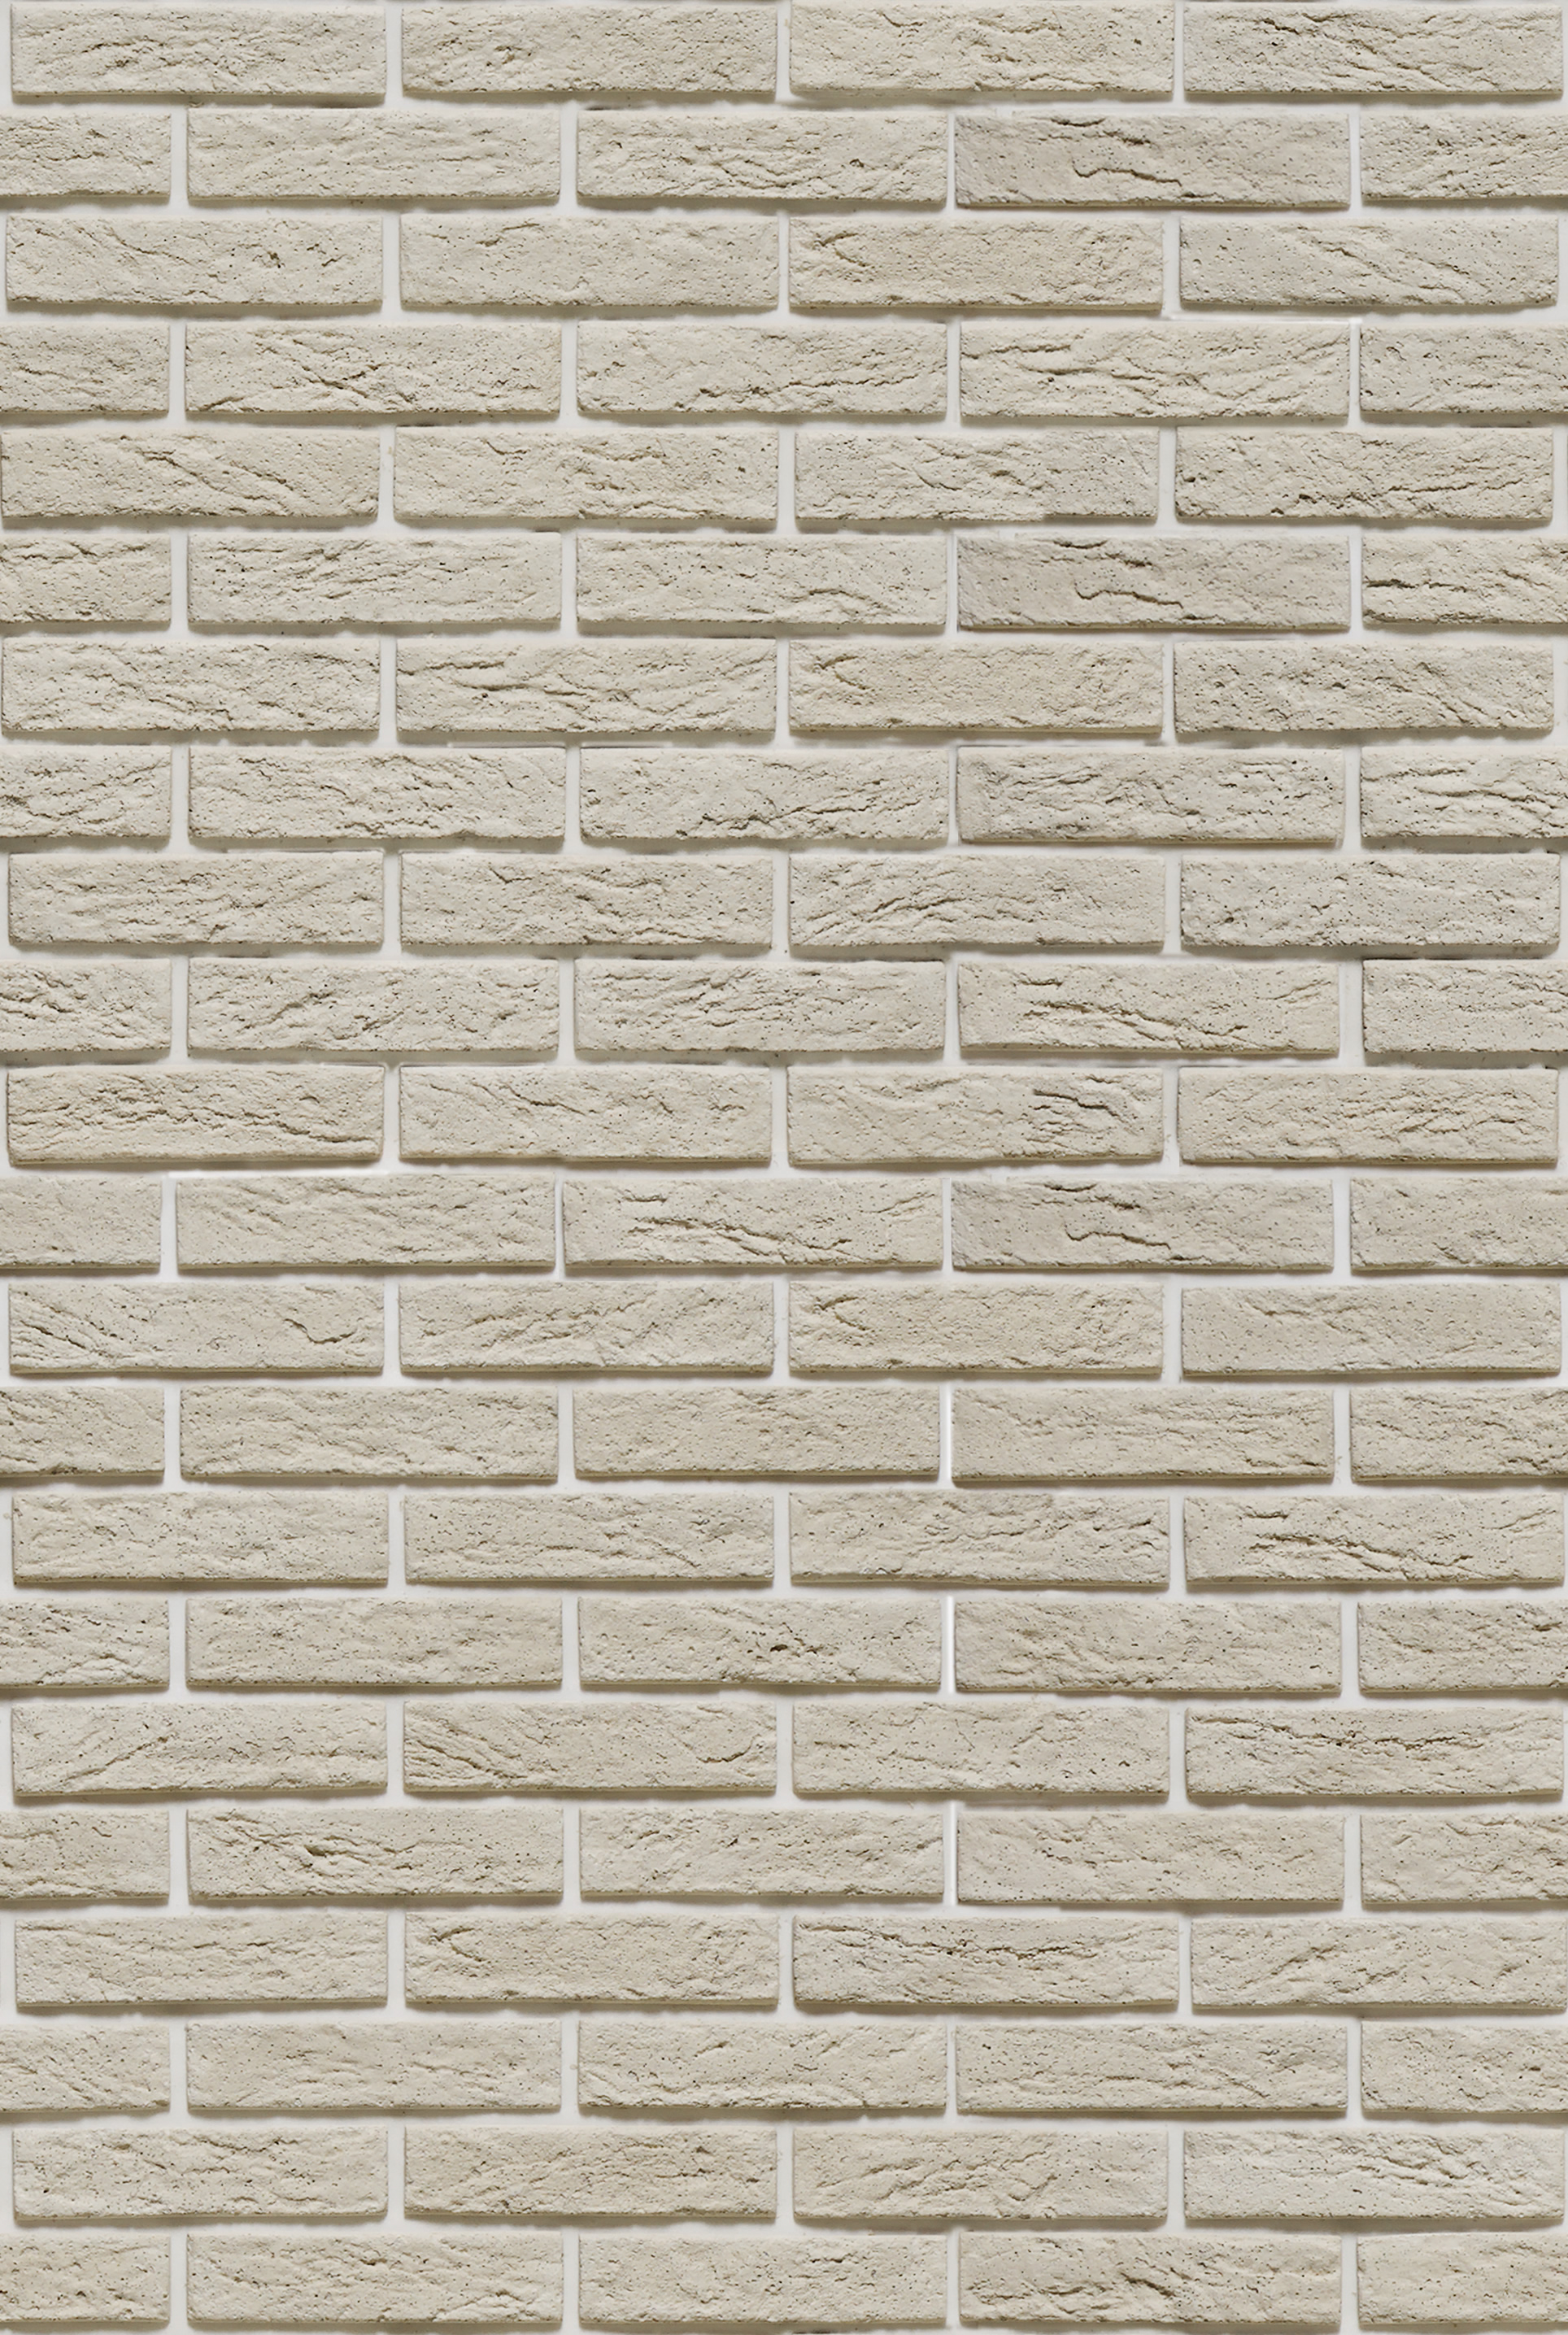 bricks, download photo, background, texture, wall